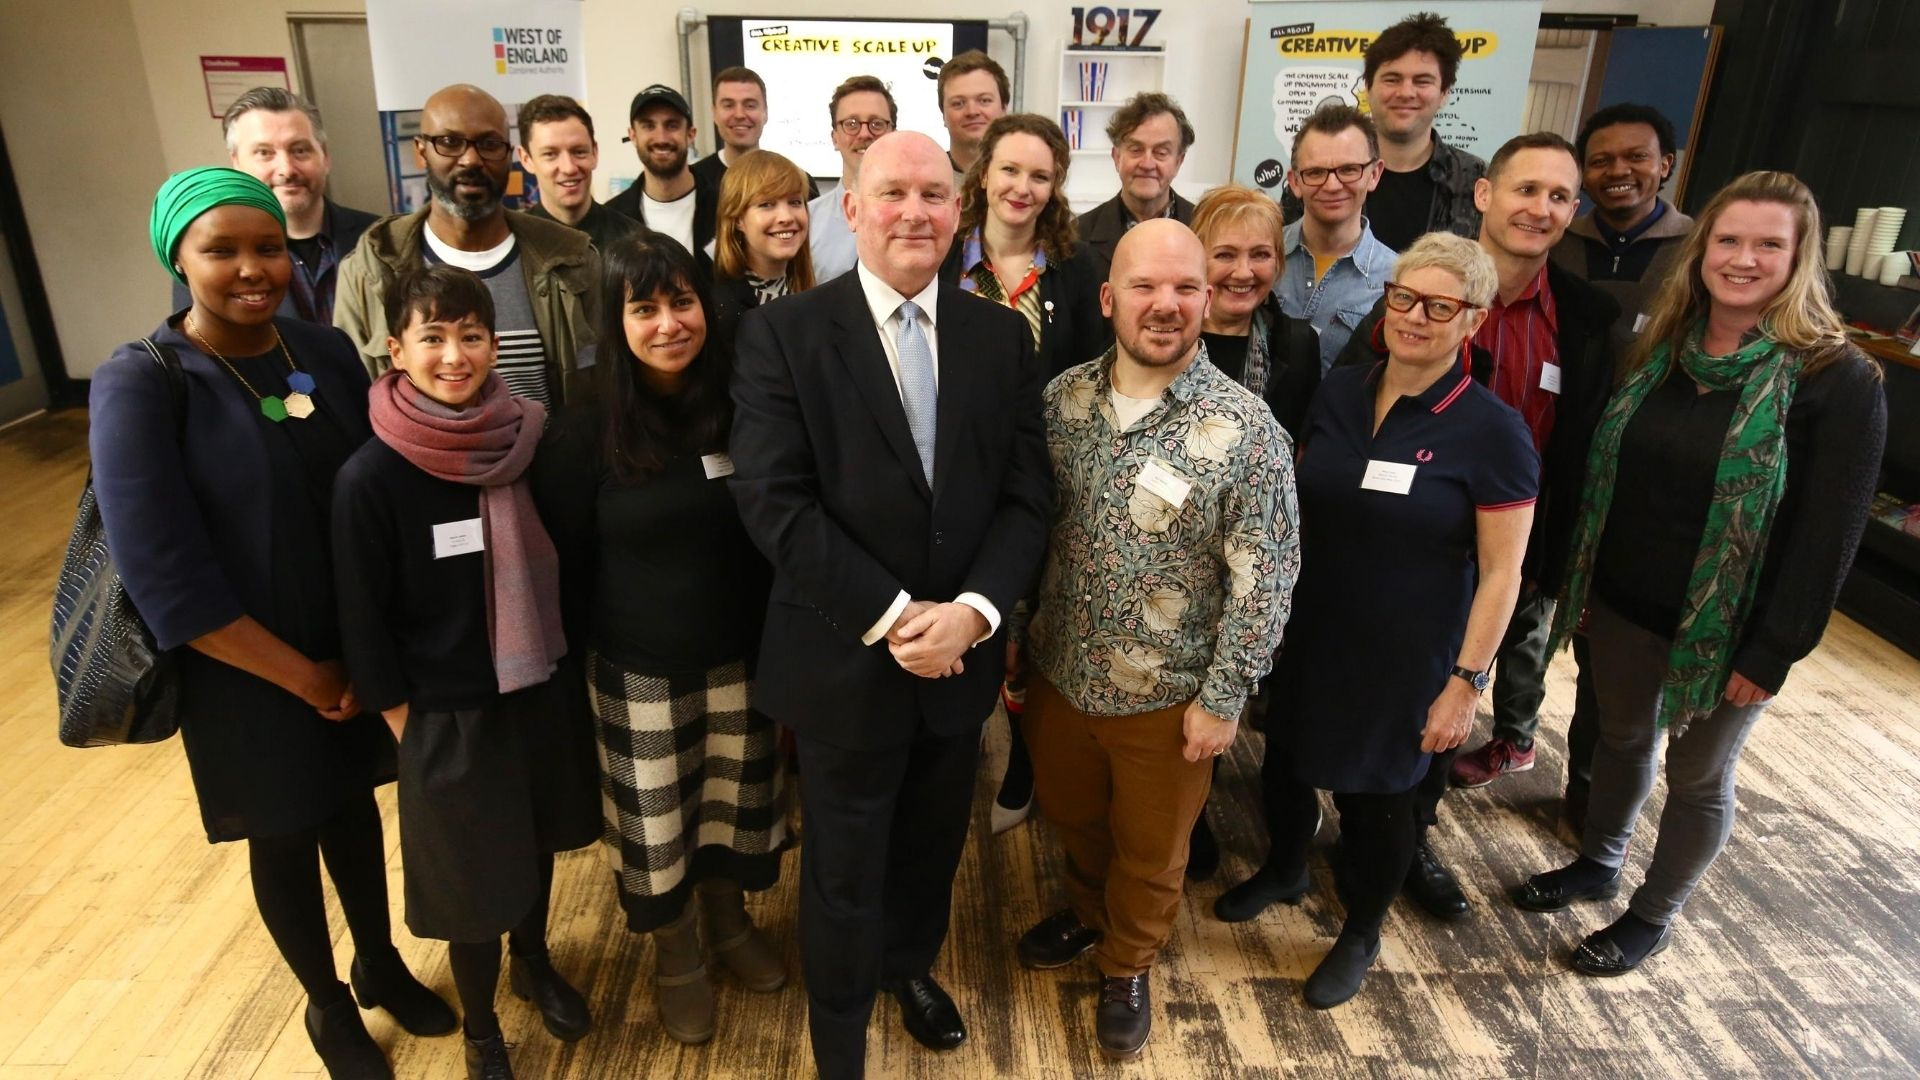 Image of group of people who have benefitted from the creative scale-up programme